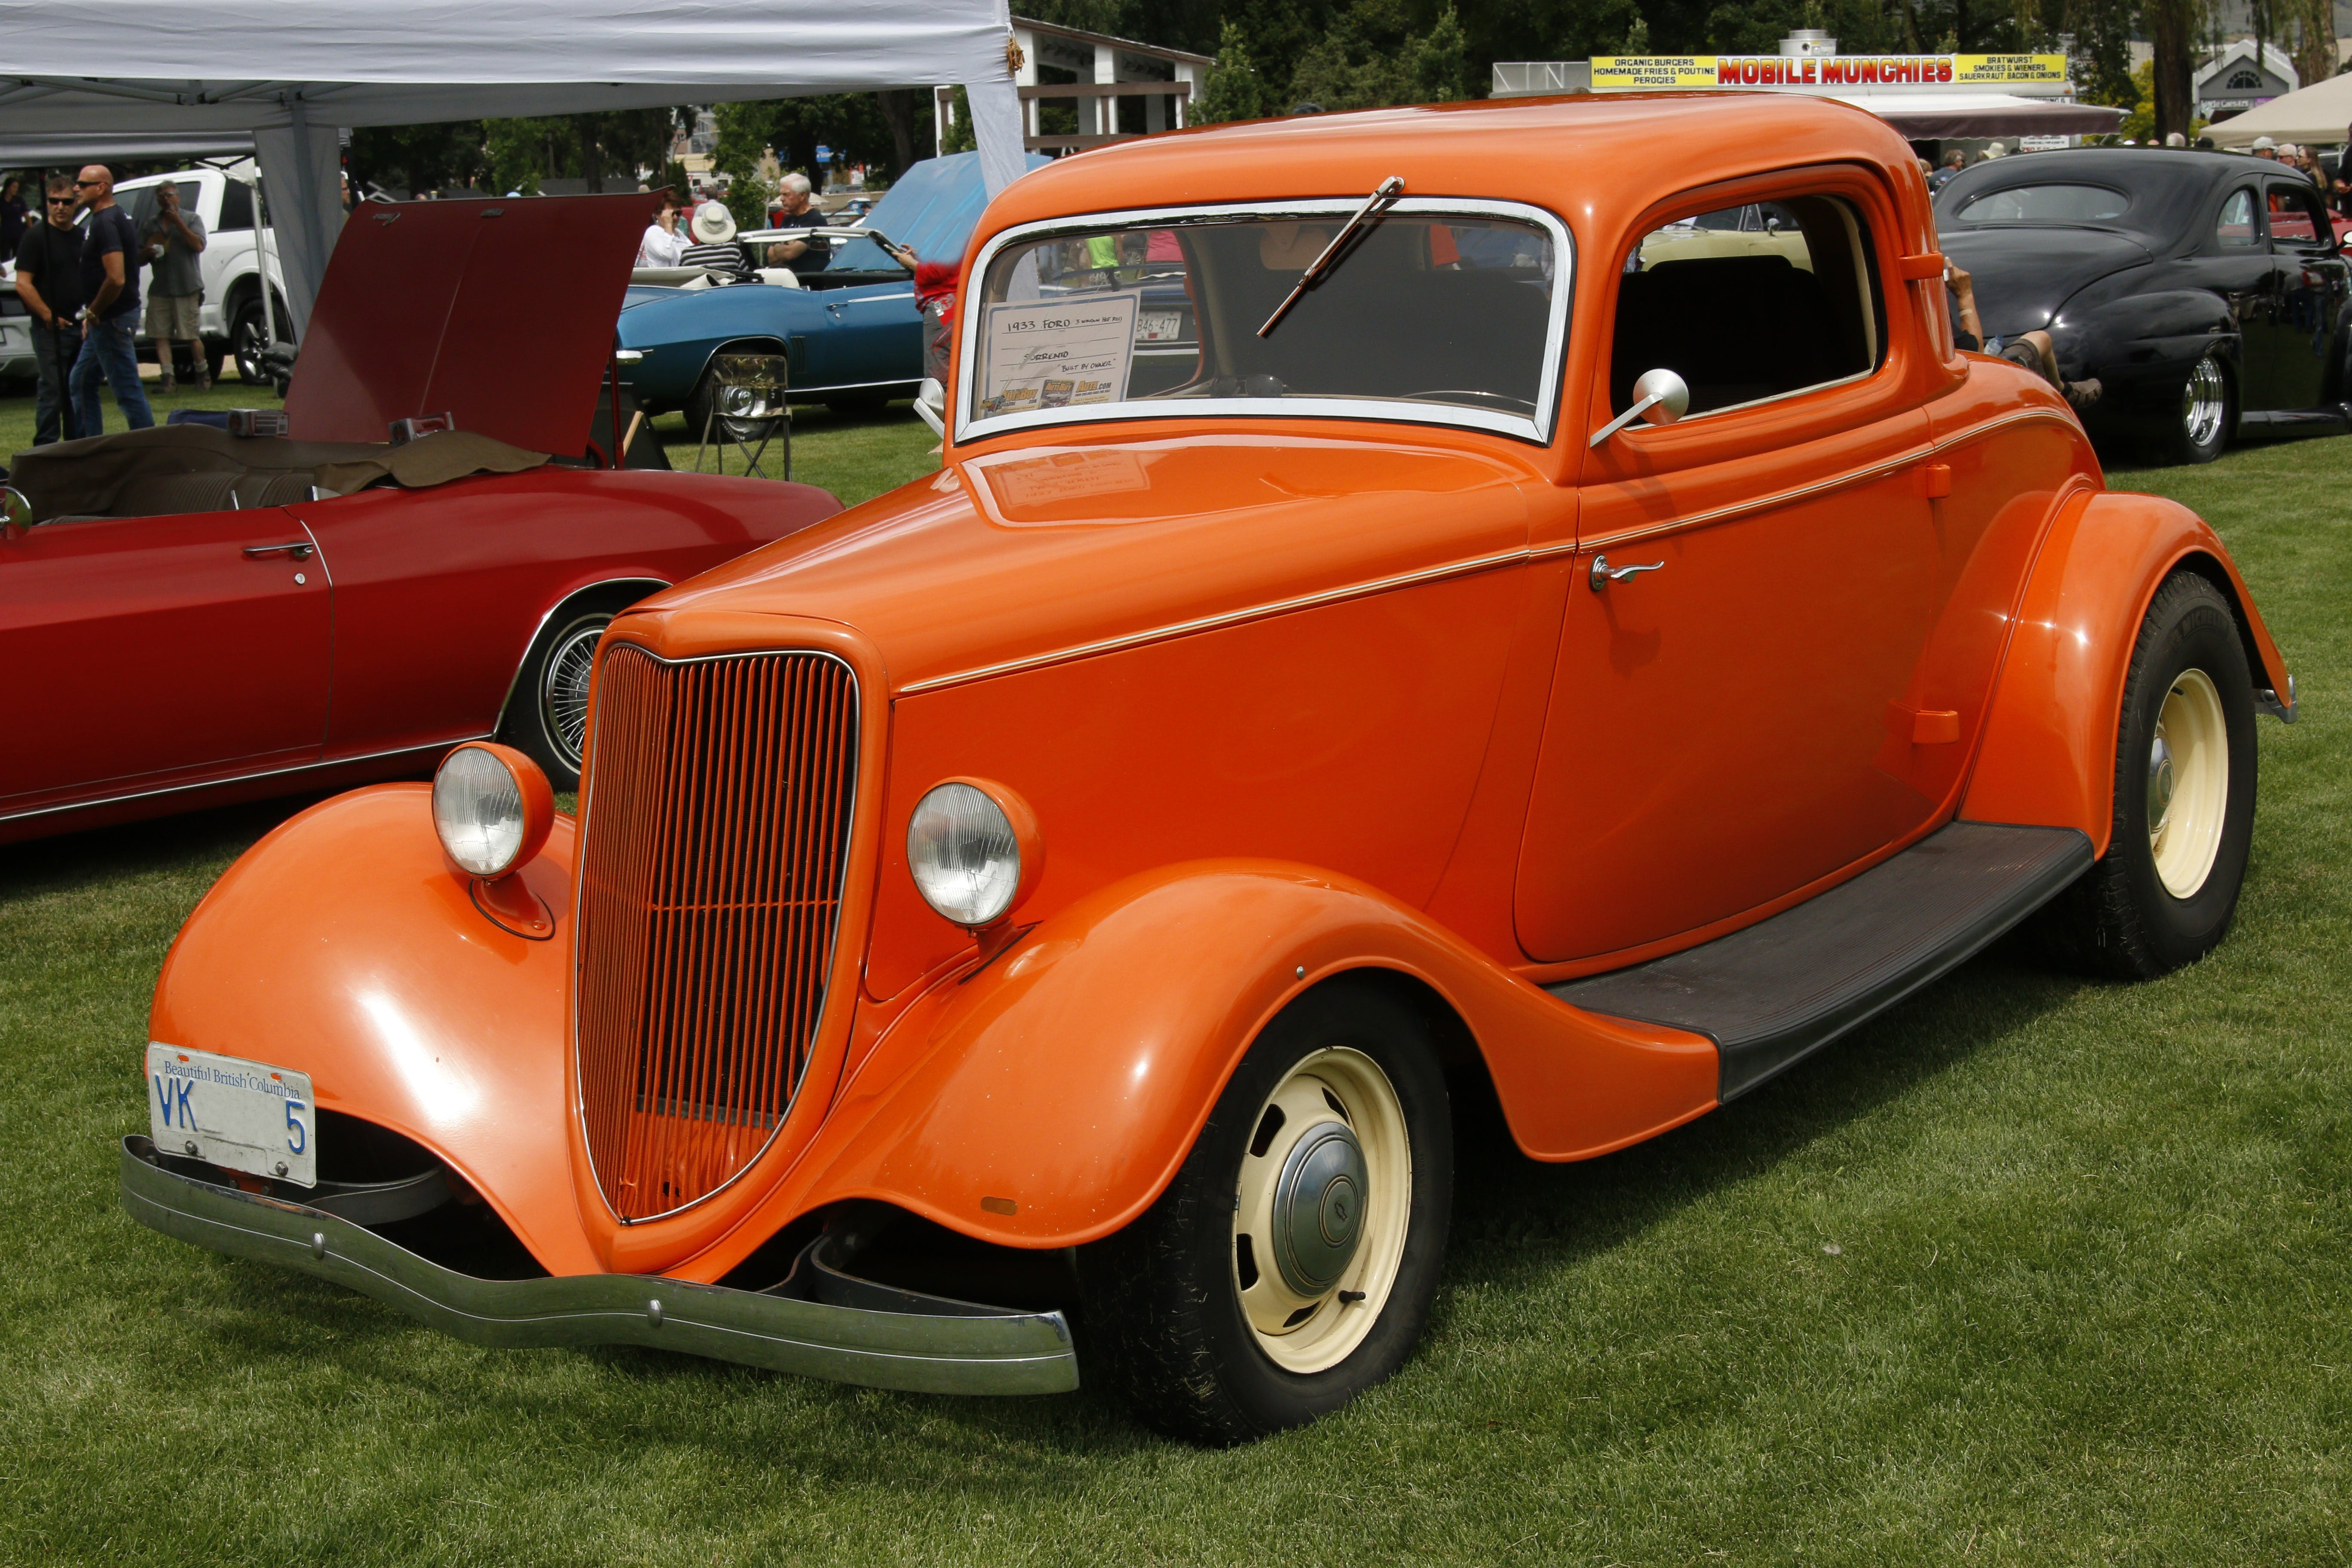 Orange Classic Coupe on Green Grass Field